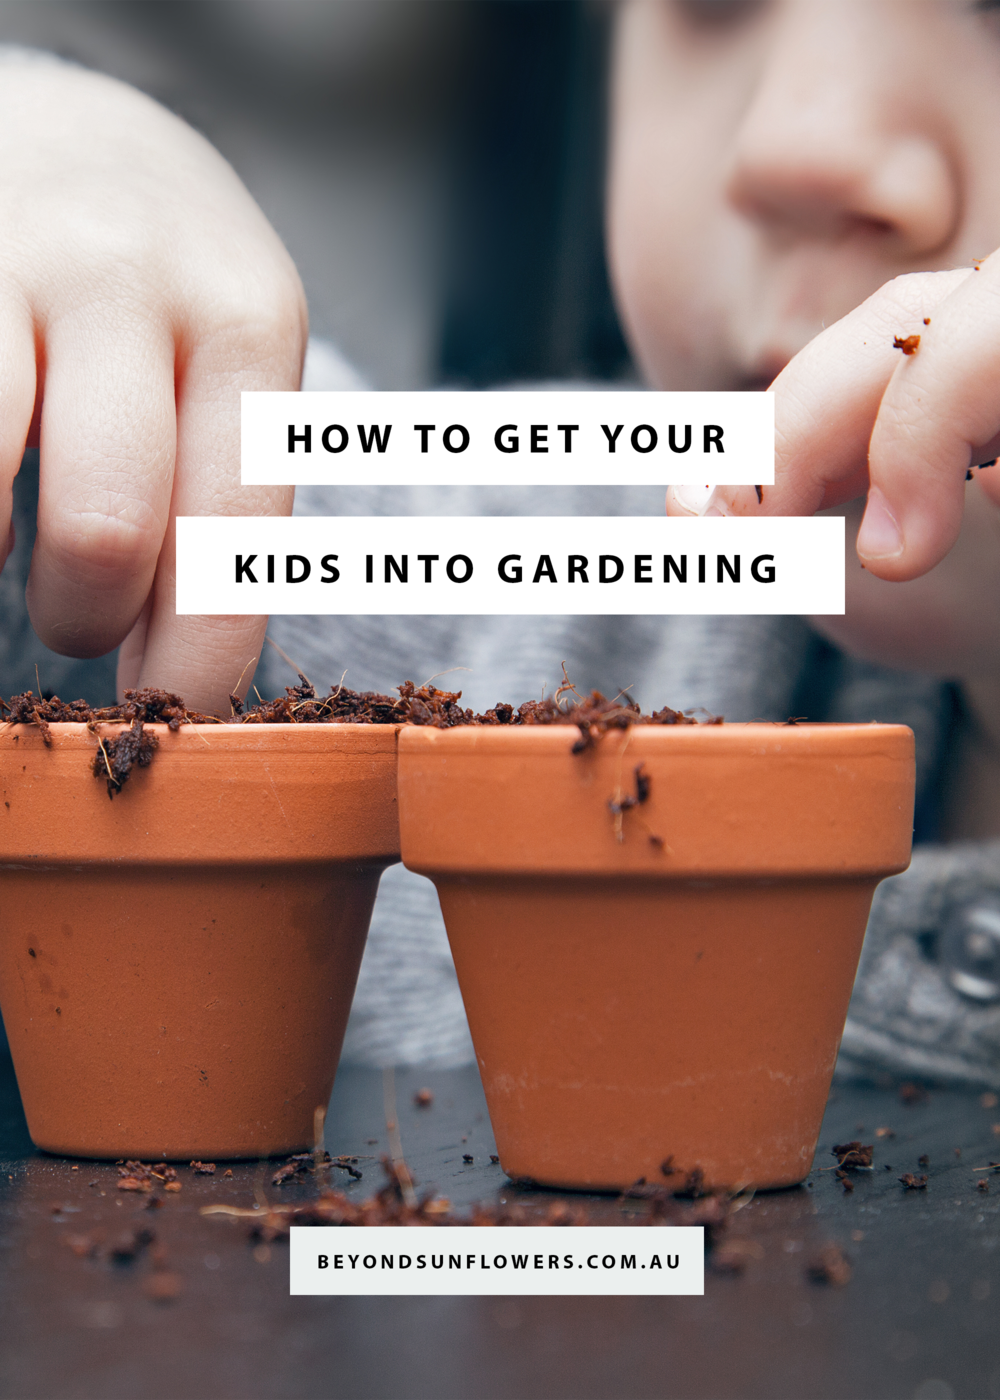 How to get your kids into gardening